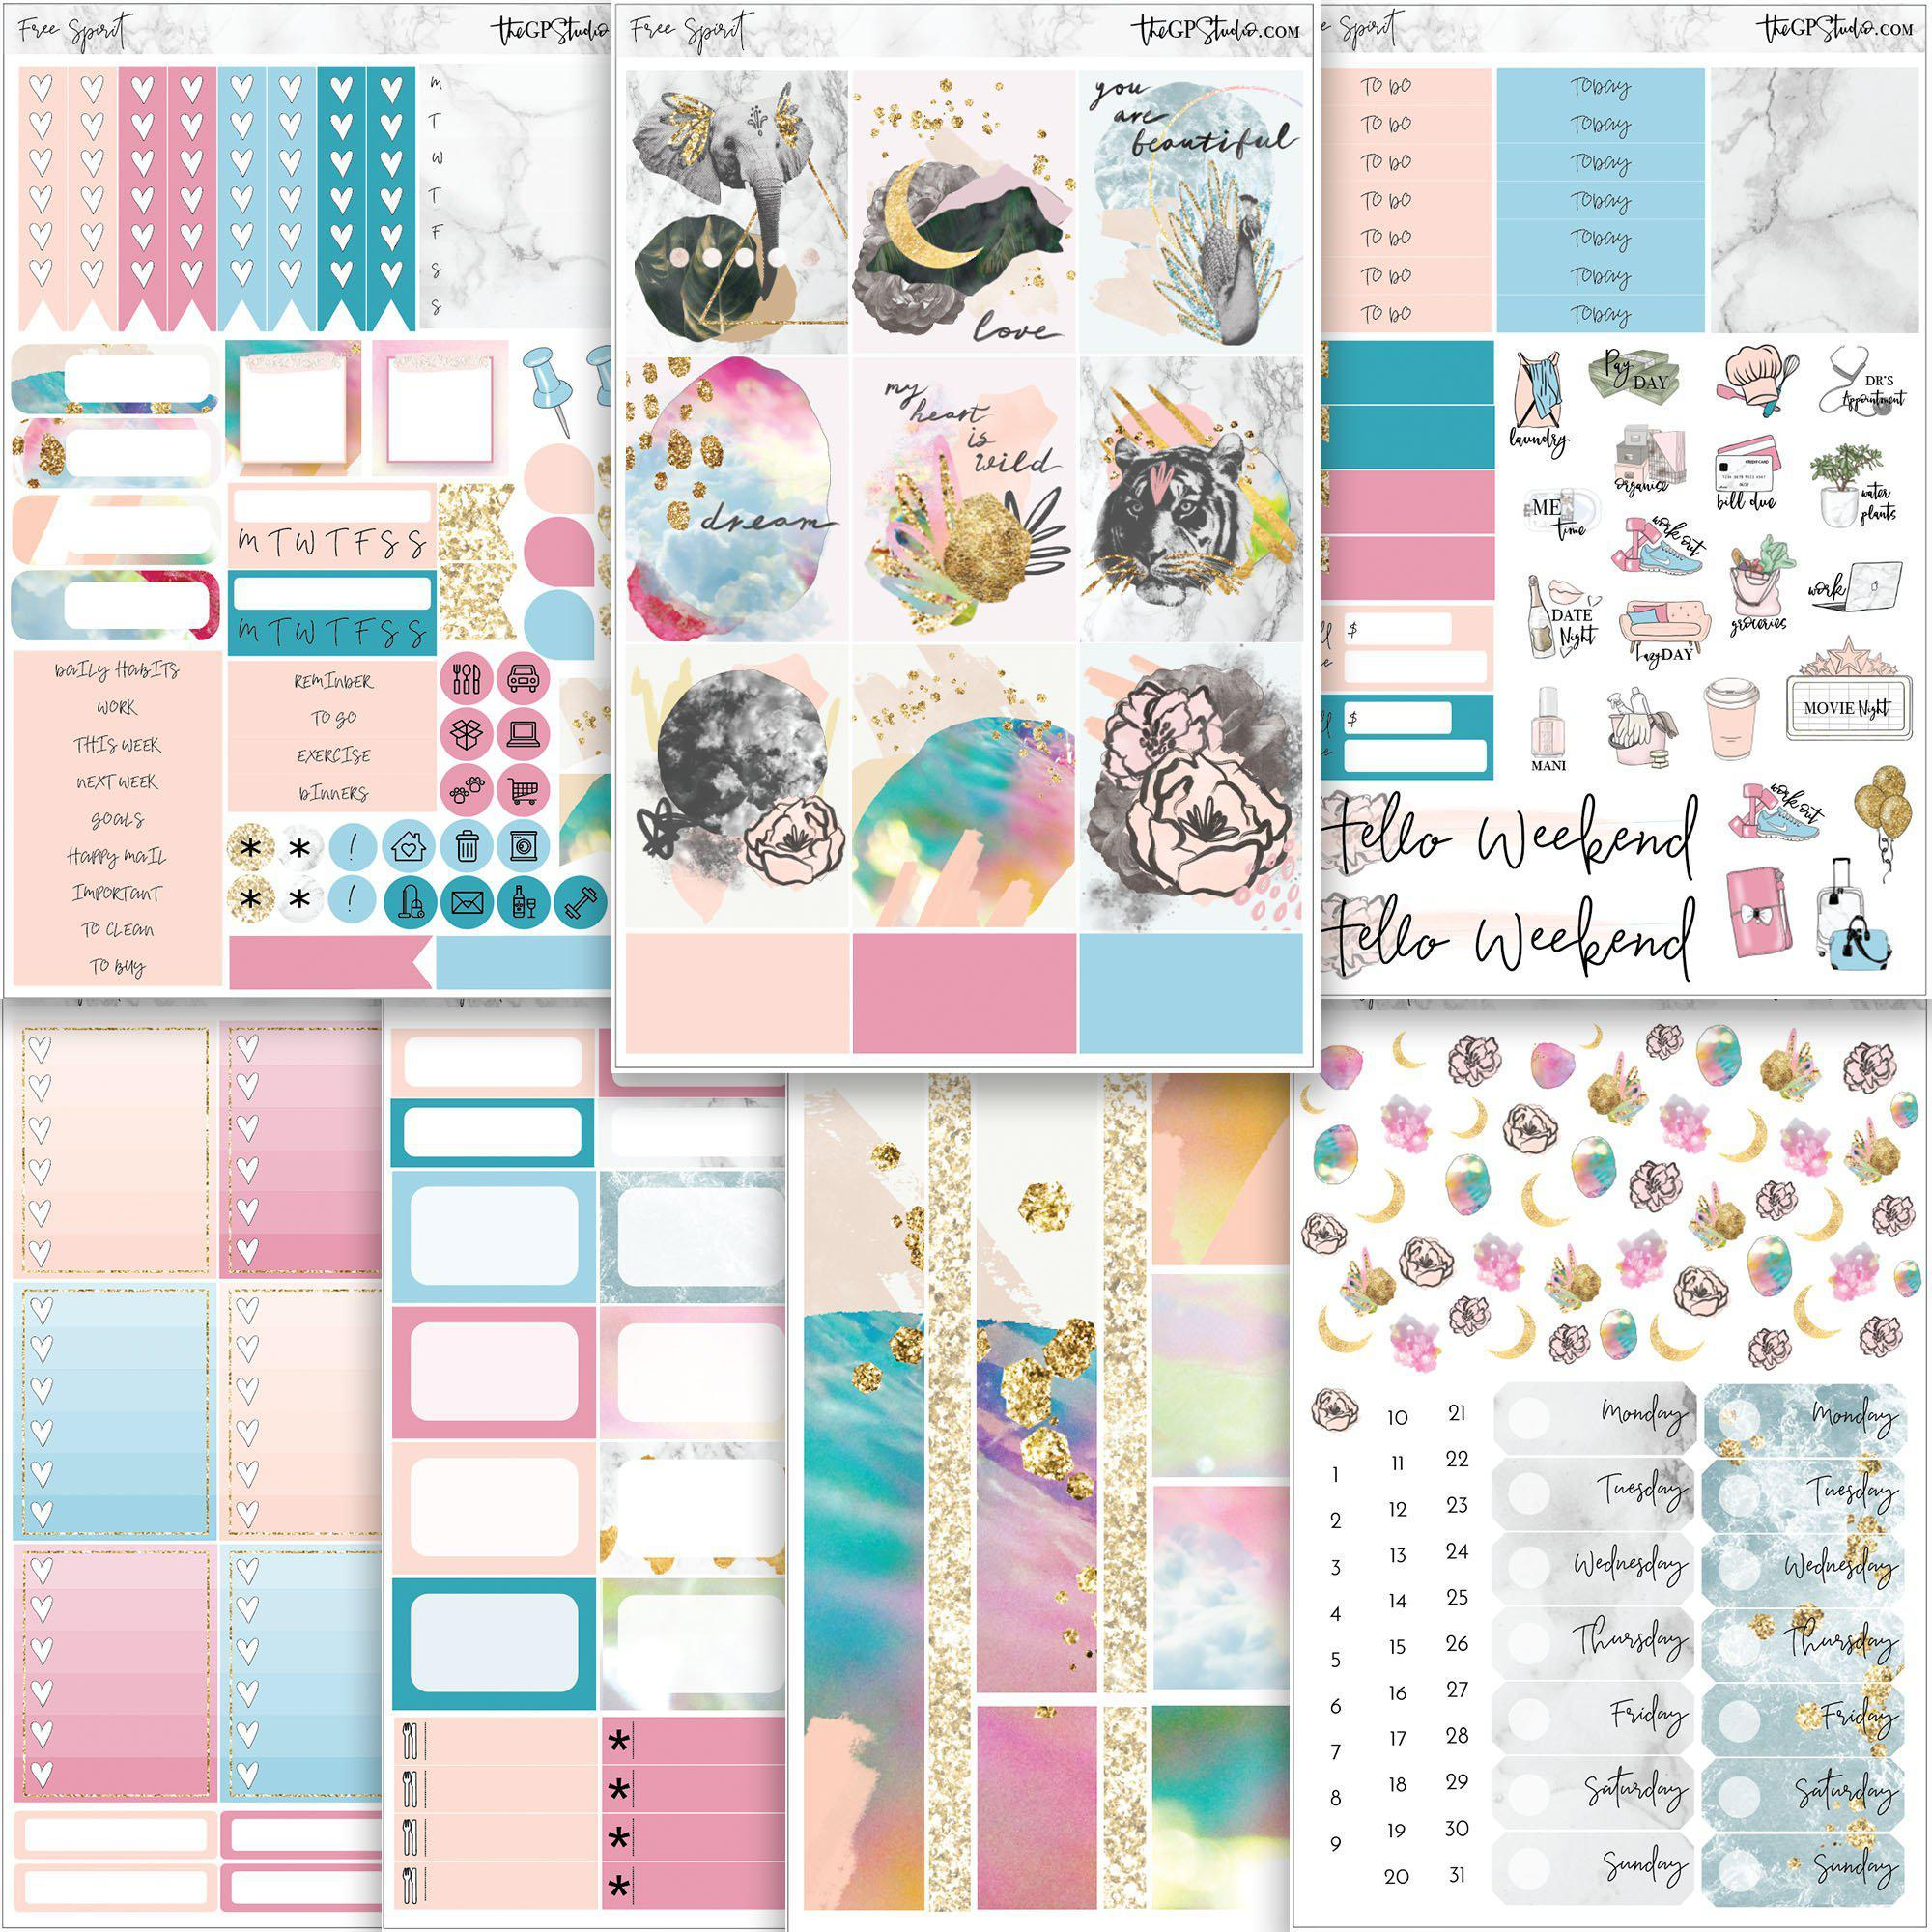 FREE SPIRIT Planner Sticker Kit-The GP Studio